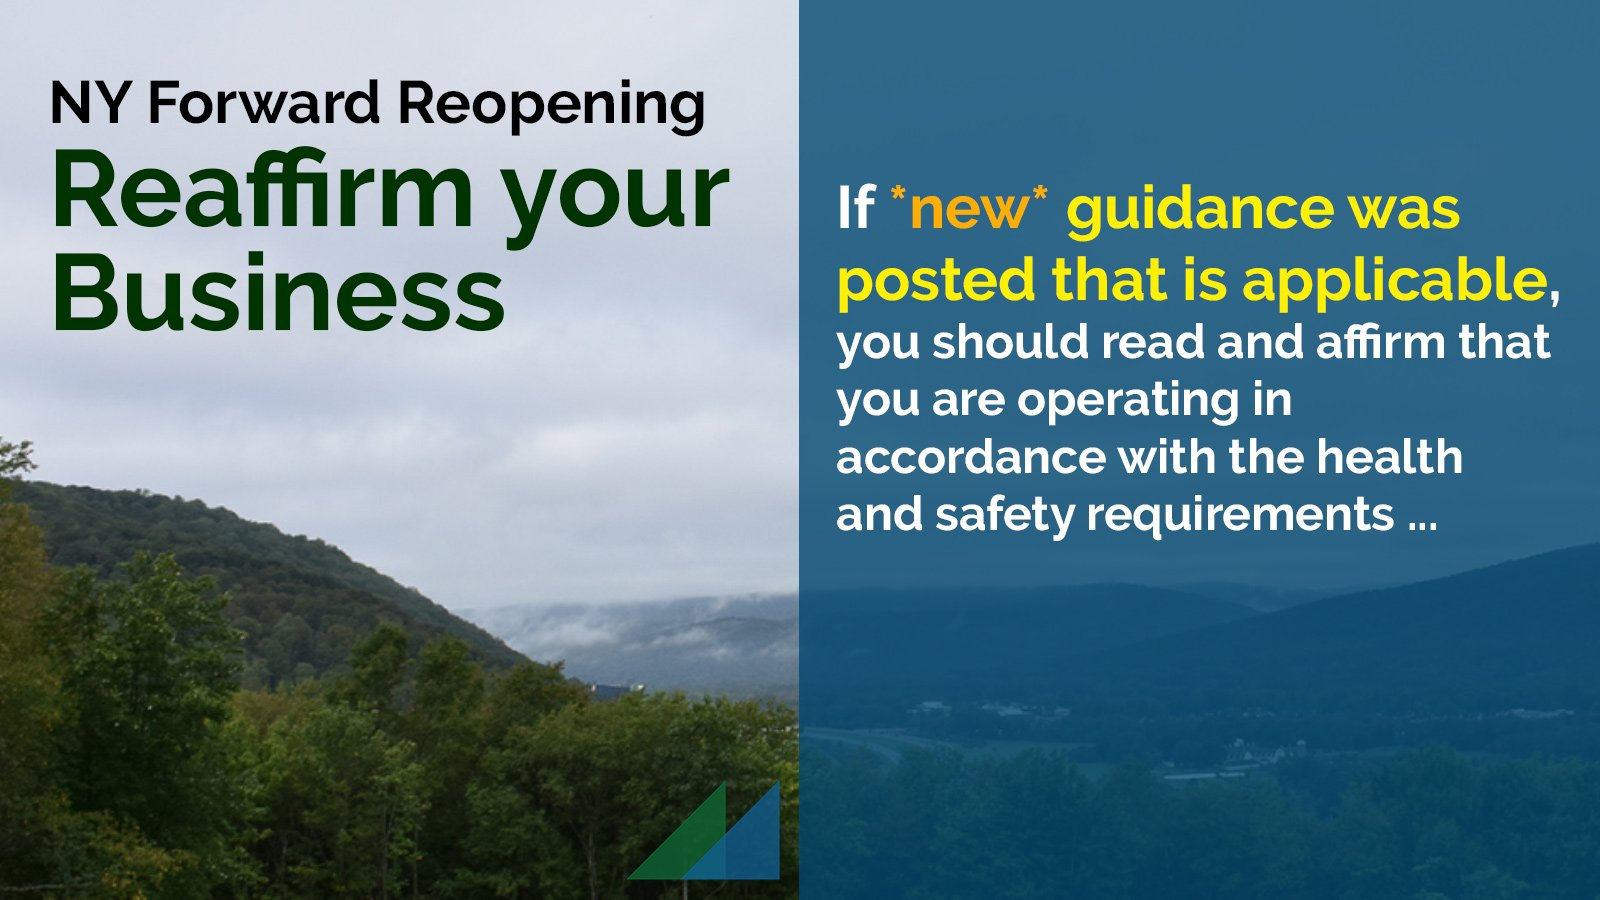 NY Forward Reopening: Reaffirm your Business. If *new* guidance was posted that is applicable, you should read and affirm that you are operating in accordance with the health and safety requirements ...